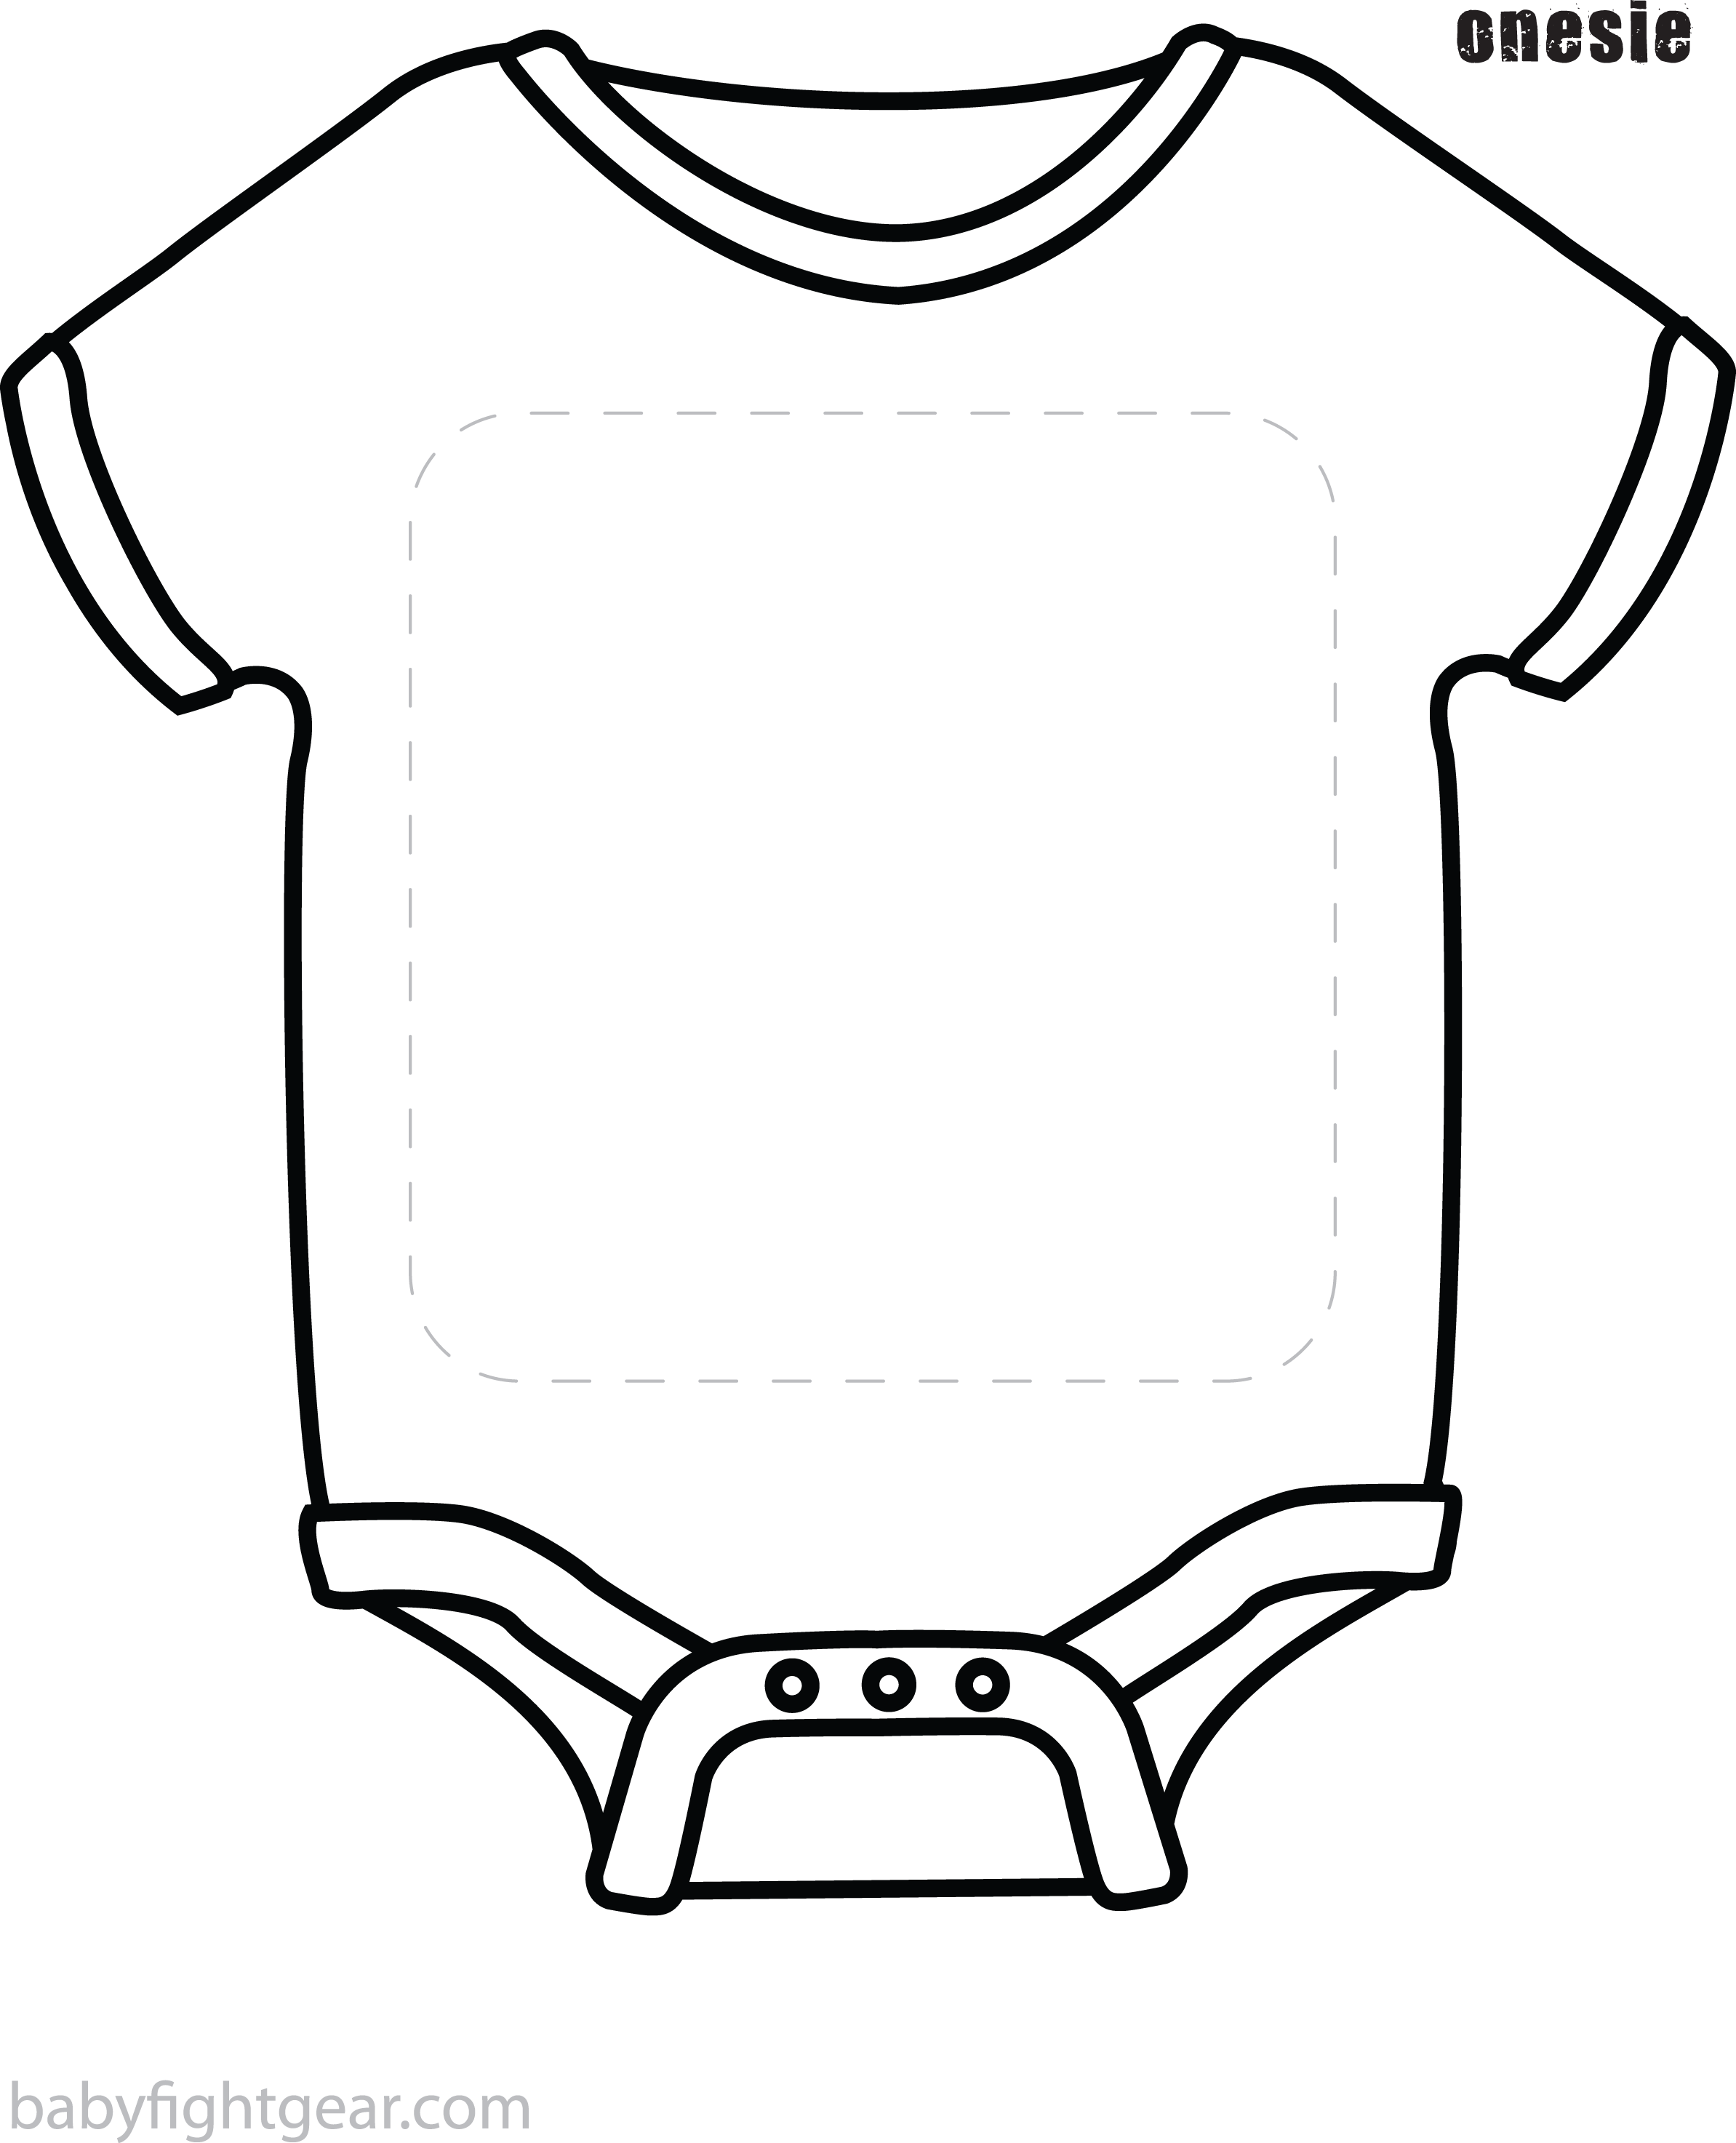 Onesie Clipart Black And White Onesie Black And White